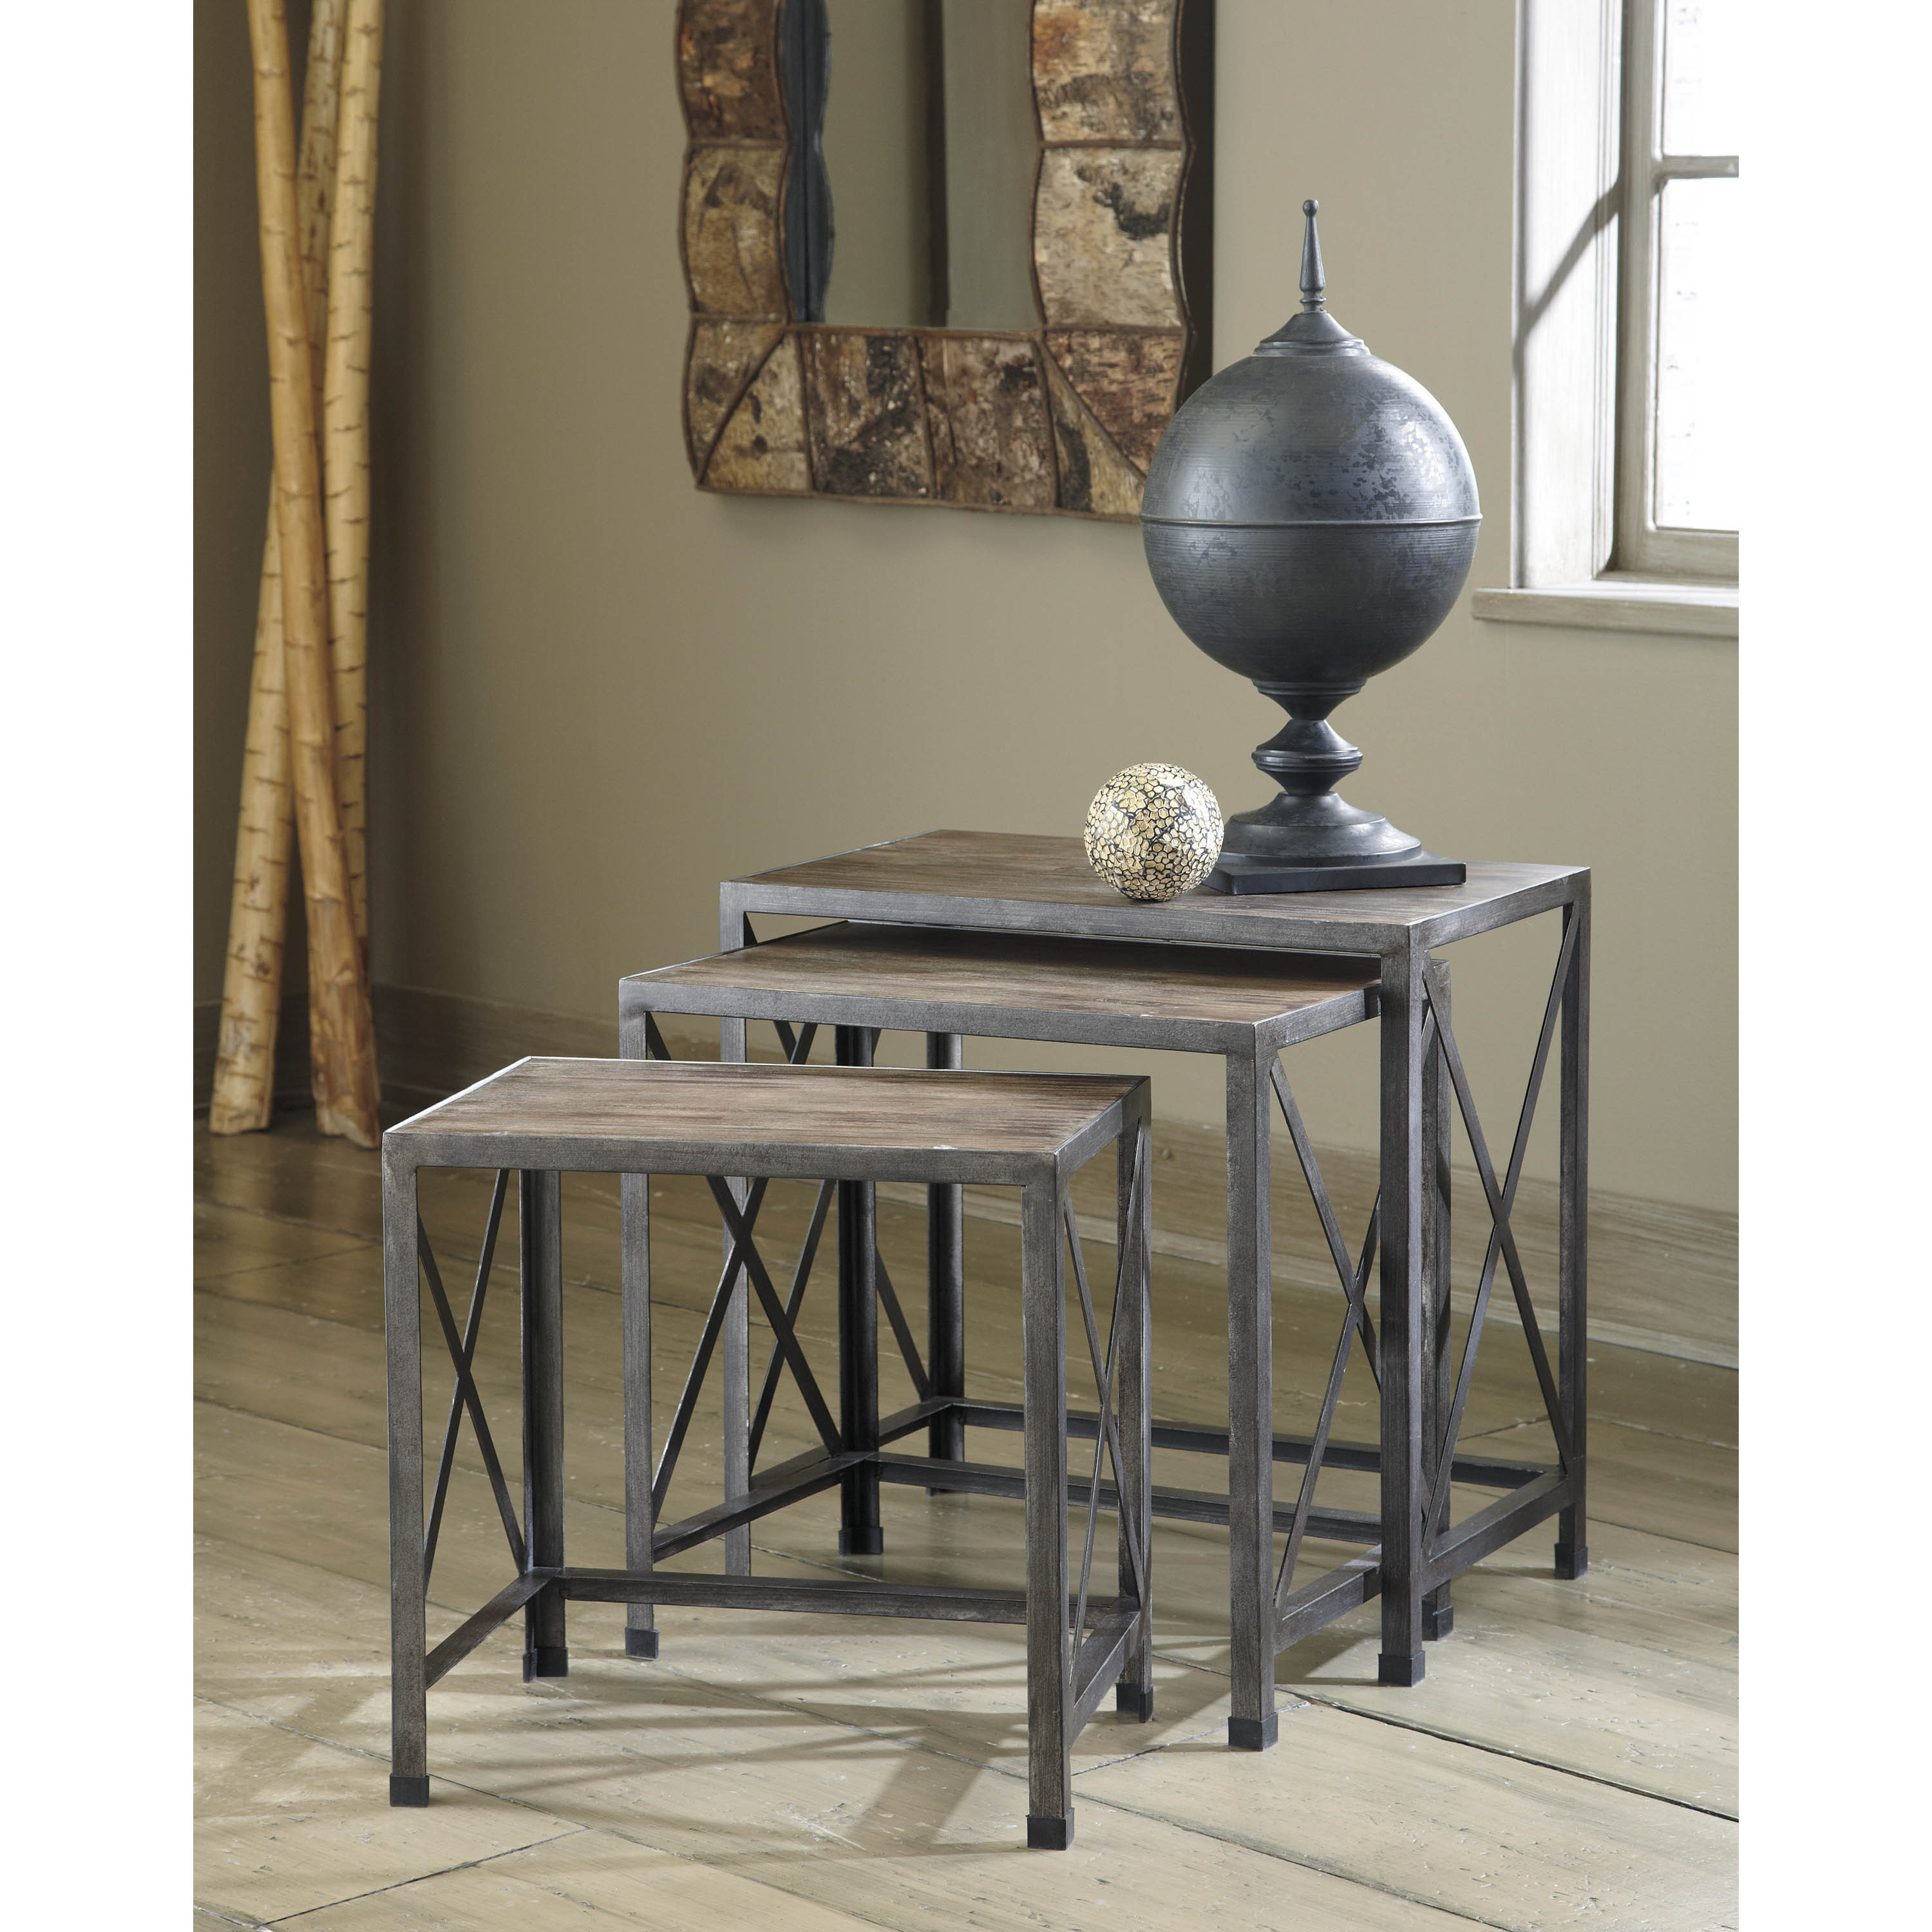 Signature Design by Ashley Vennilux Gray Brown Nesting End Tables